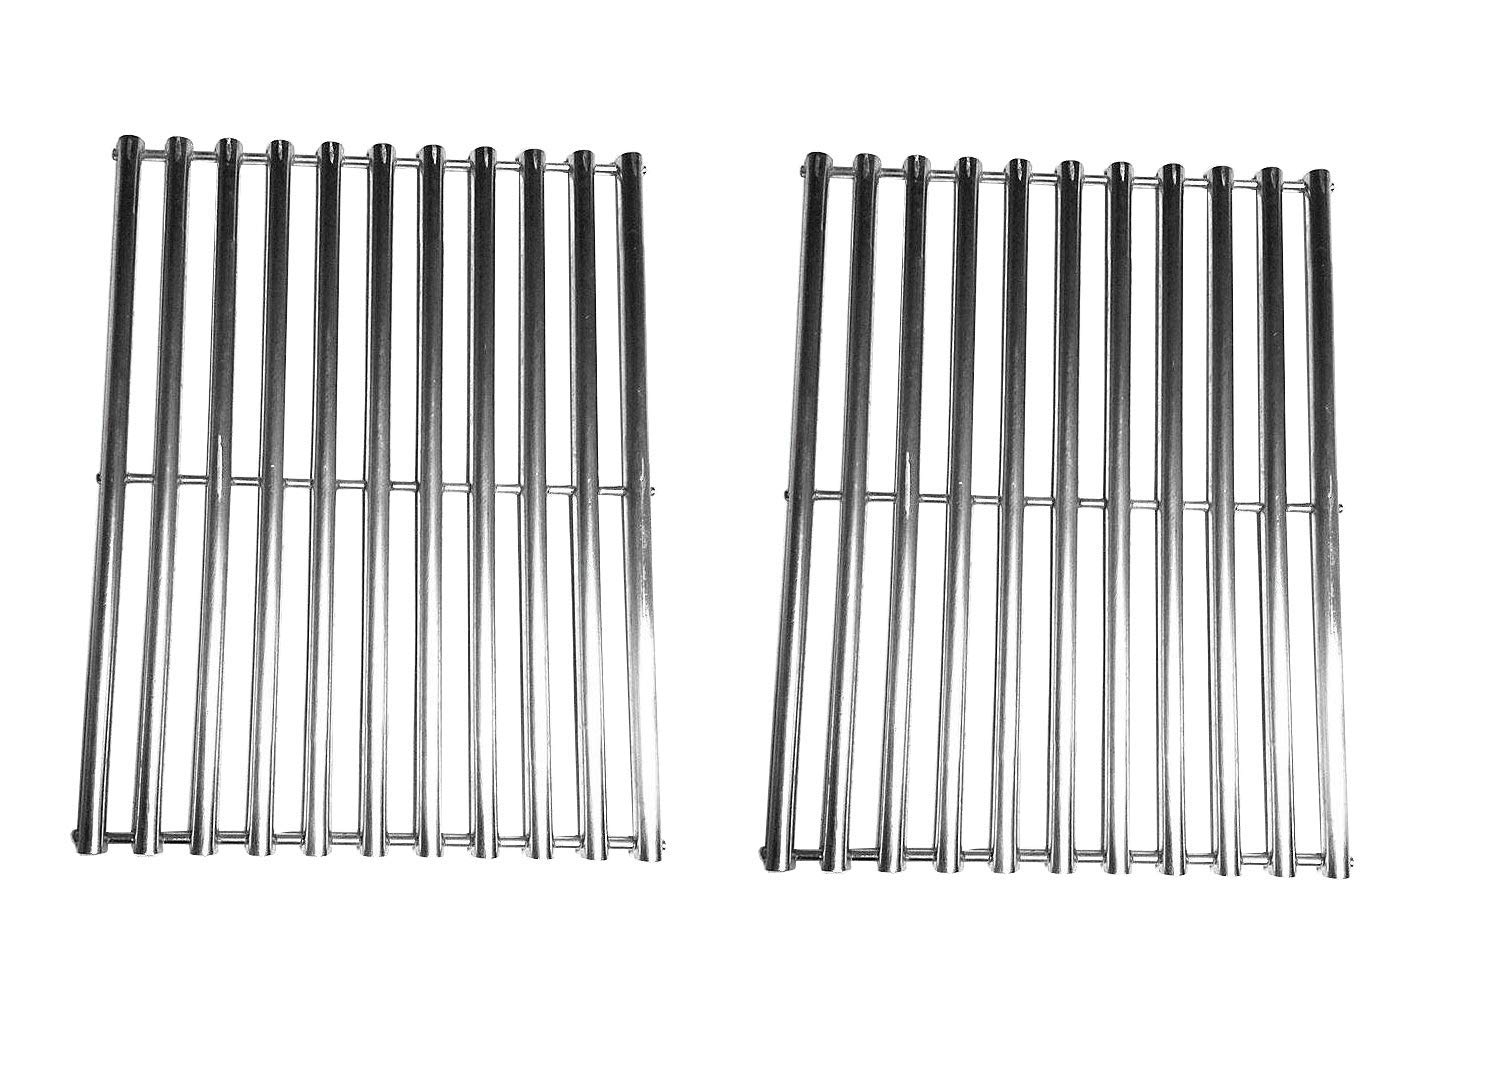 Zljoint Stainless Steel Cladding Rod Cooking Grates/Cooking Grid Replacement Fit Brinkmann, Grill Master, Nexgrill and Uniflame Gas Grills and Others, Set of 2